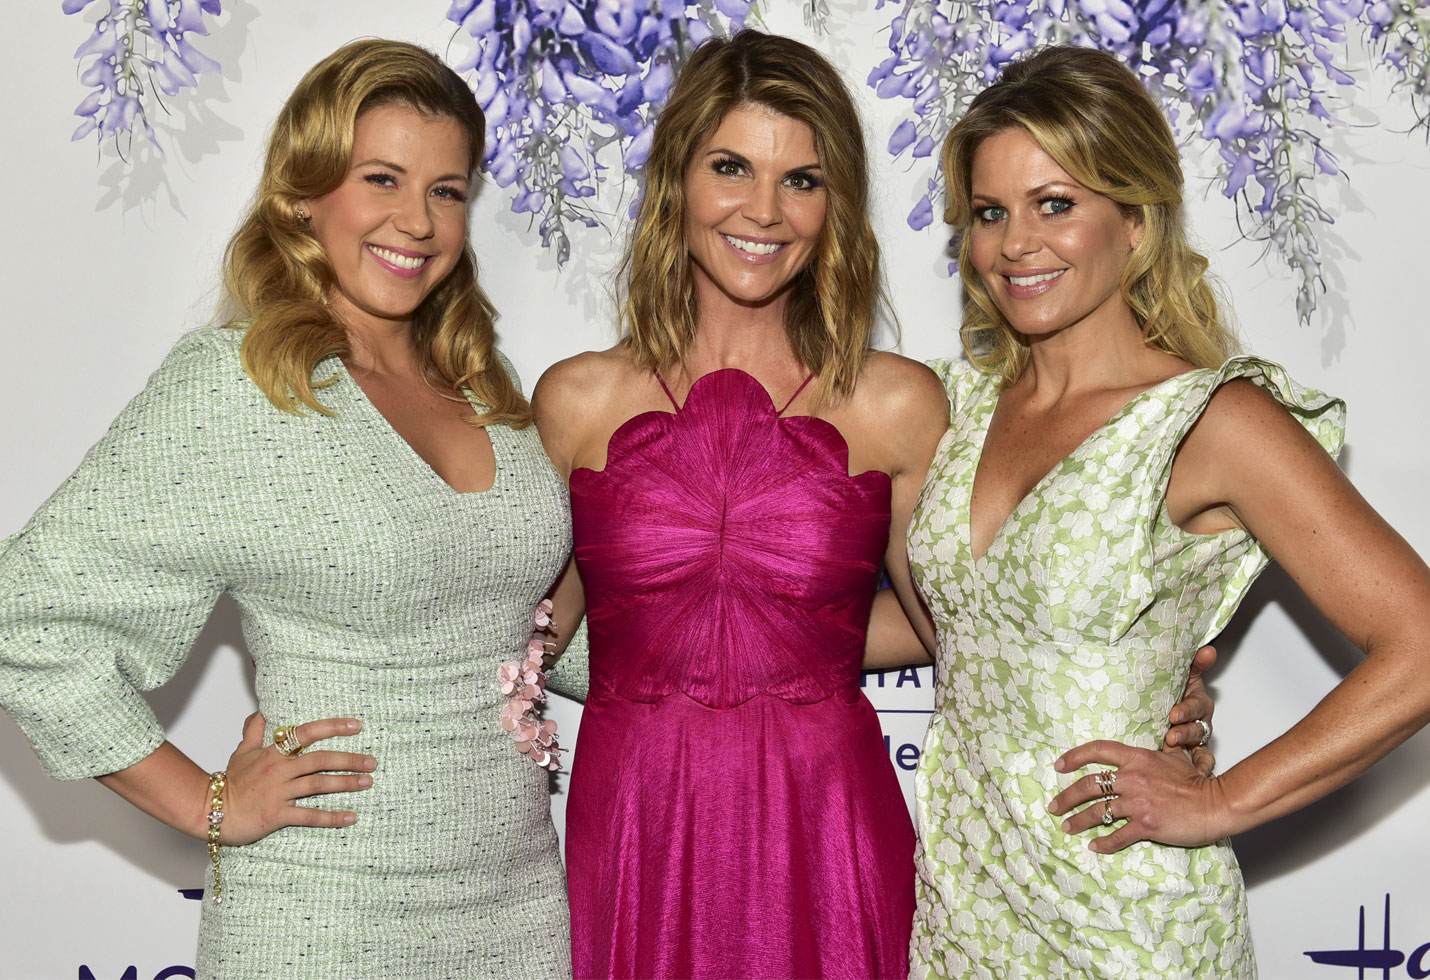 Fuller house lori loughlin cheating scandal candace cameron bure today show